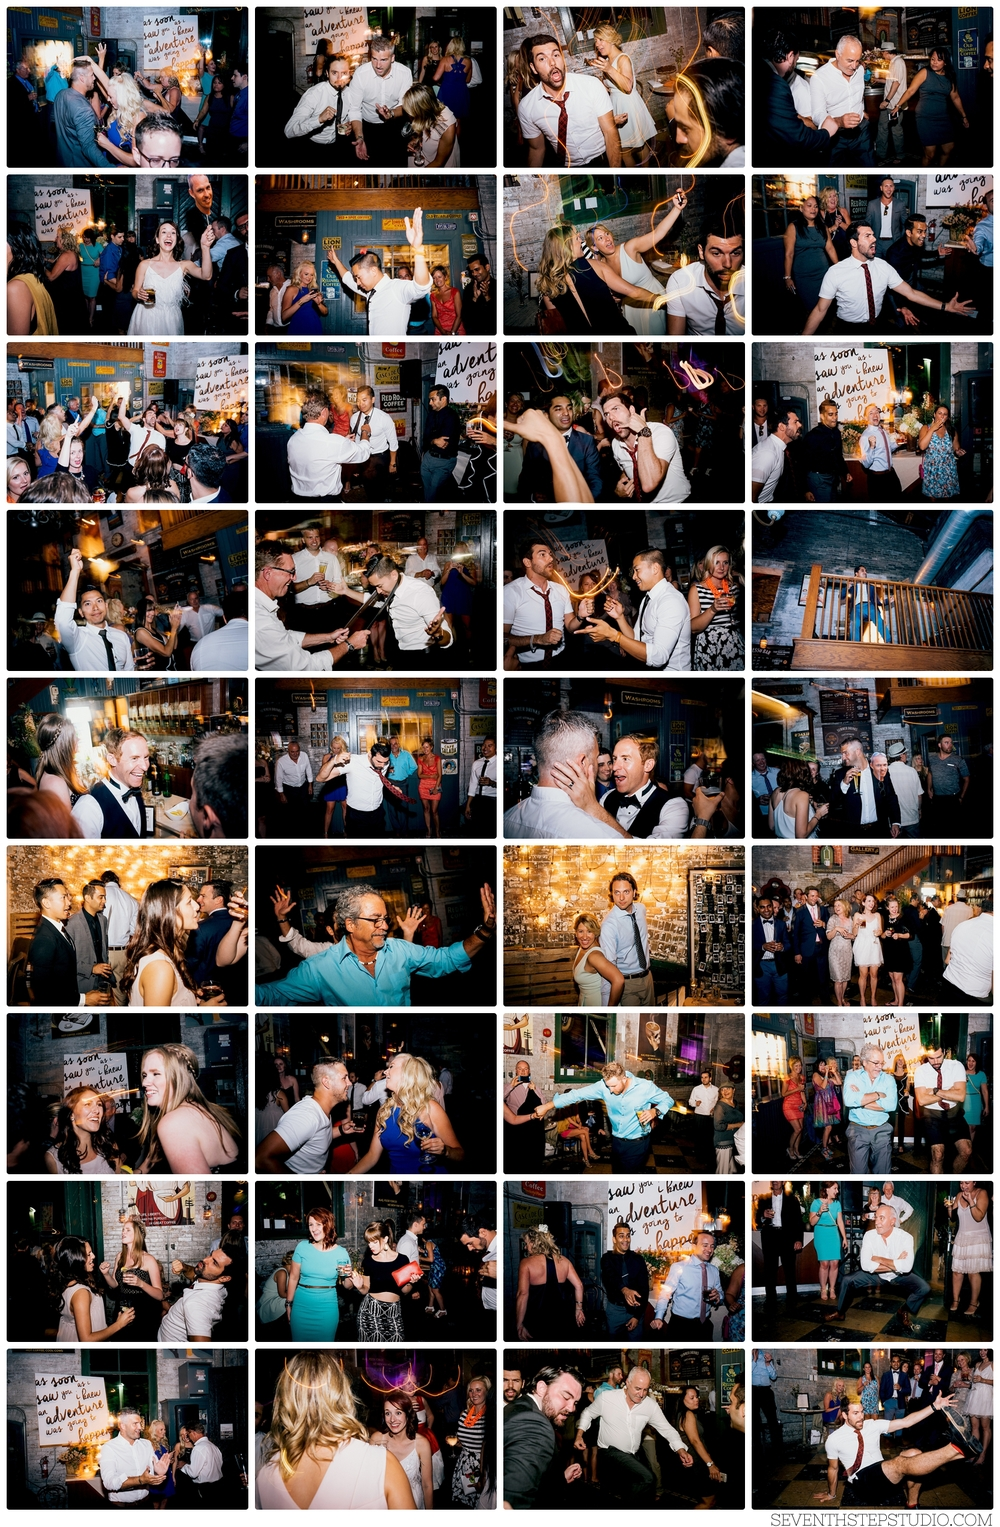 July11_Gaucher_Kunz_Wedding_1816.jpg